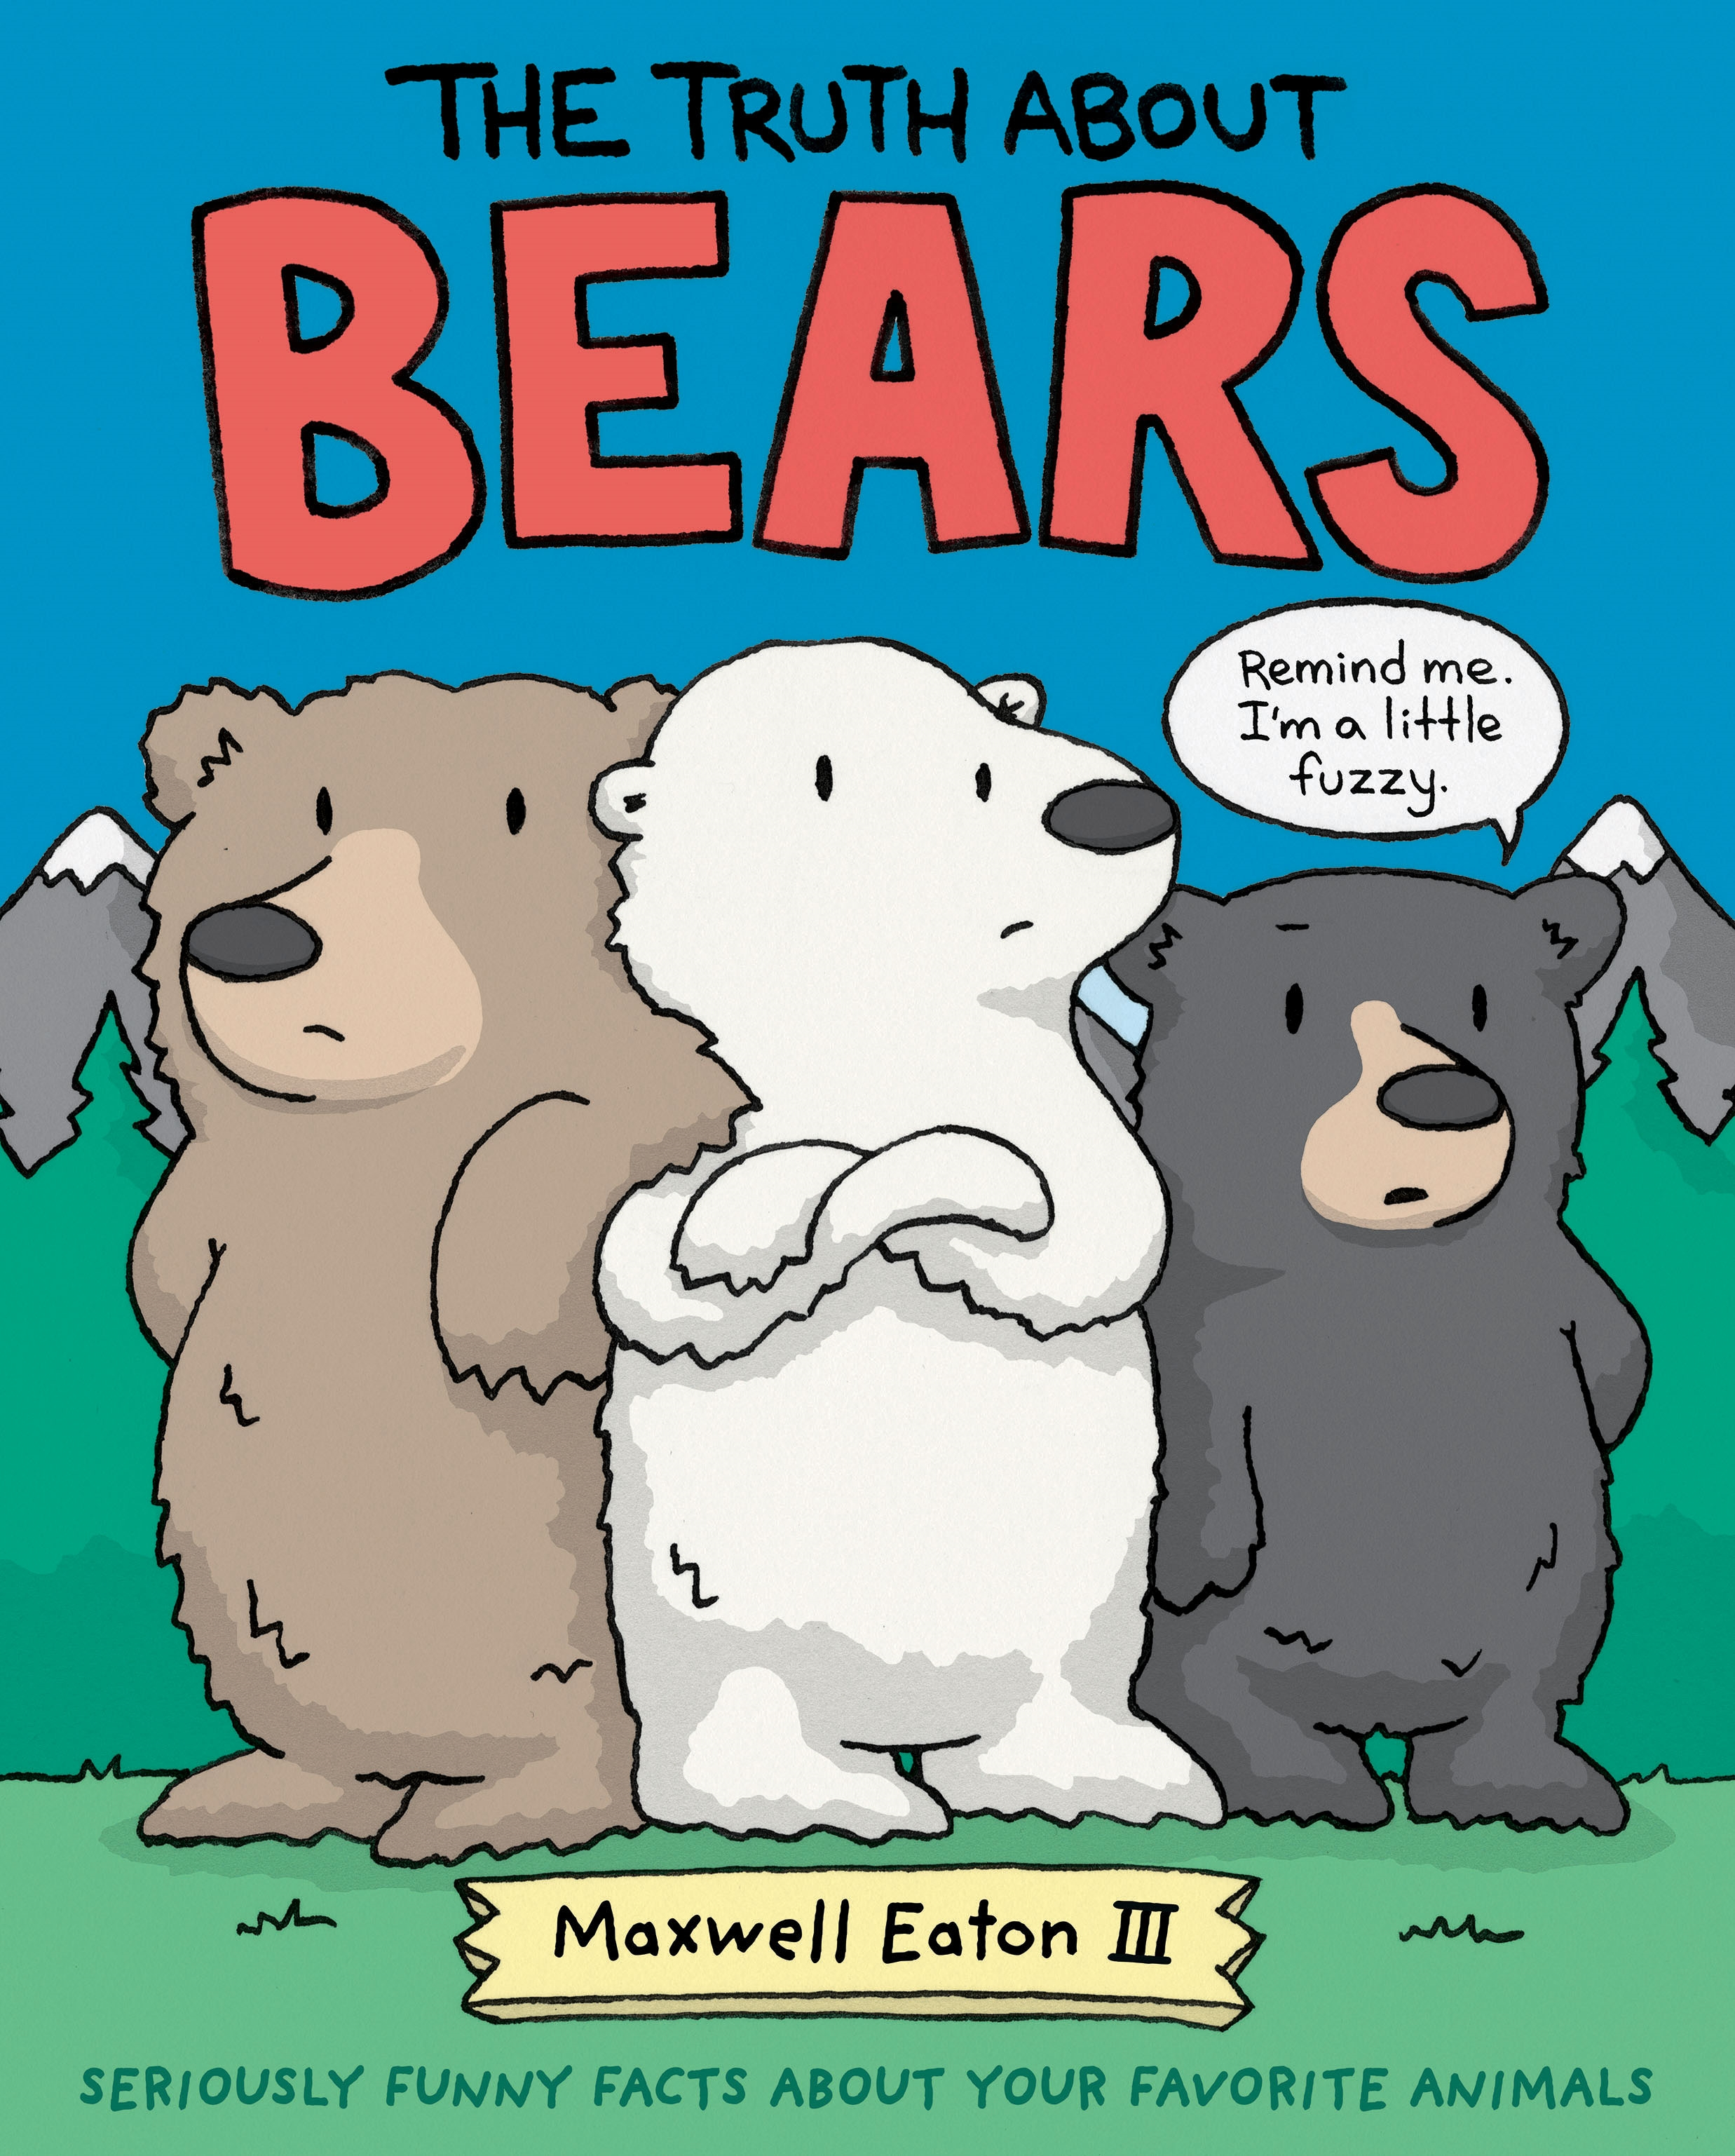 Sunday Story Time with Maxwell Eaton III (Author/Illustrator of The Truth About Bears & The Truth About Hippos)